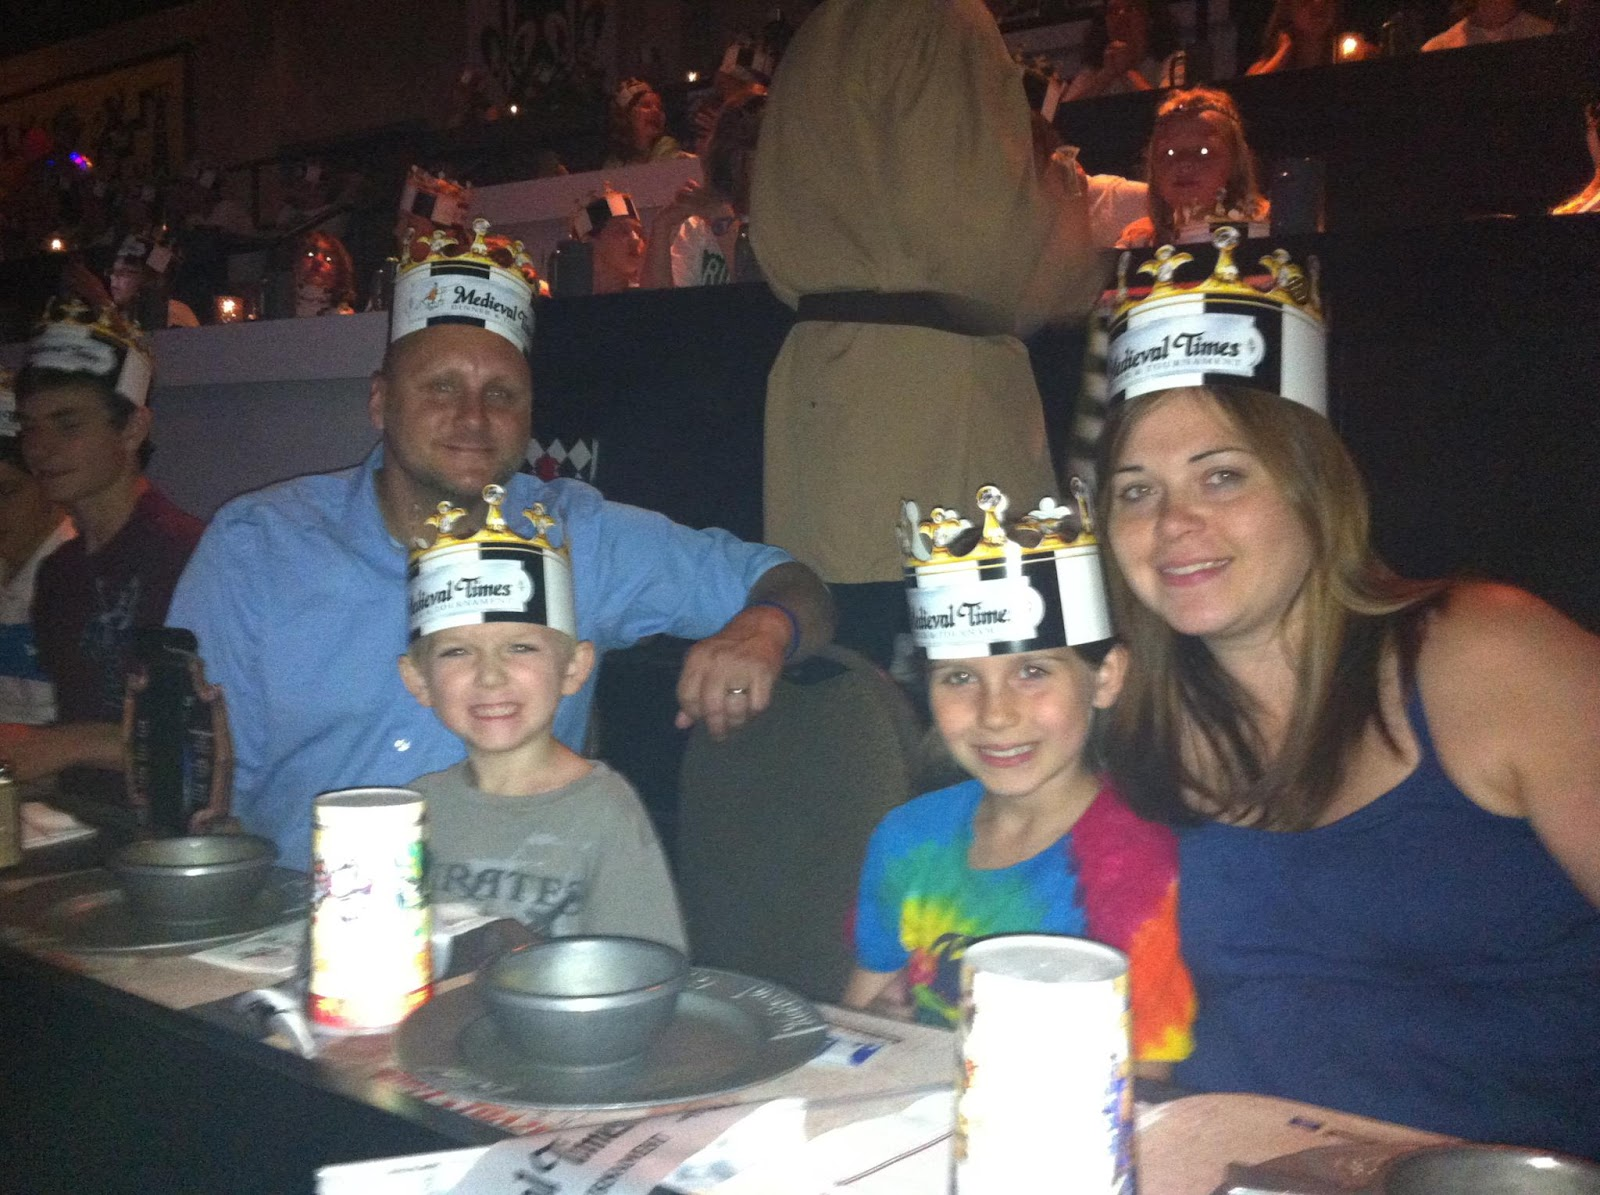 Medieval times is a franchise dinner theatre with a medieval theme. You eat a medieval style banquet in a large arena while being entertained by a show.